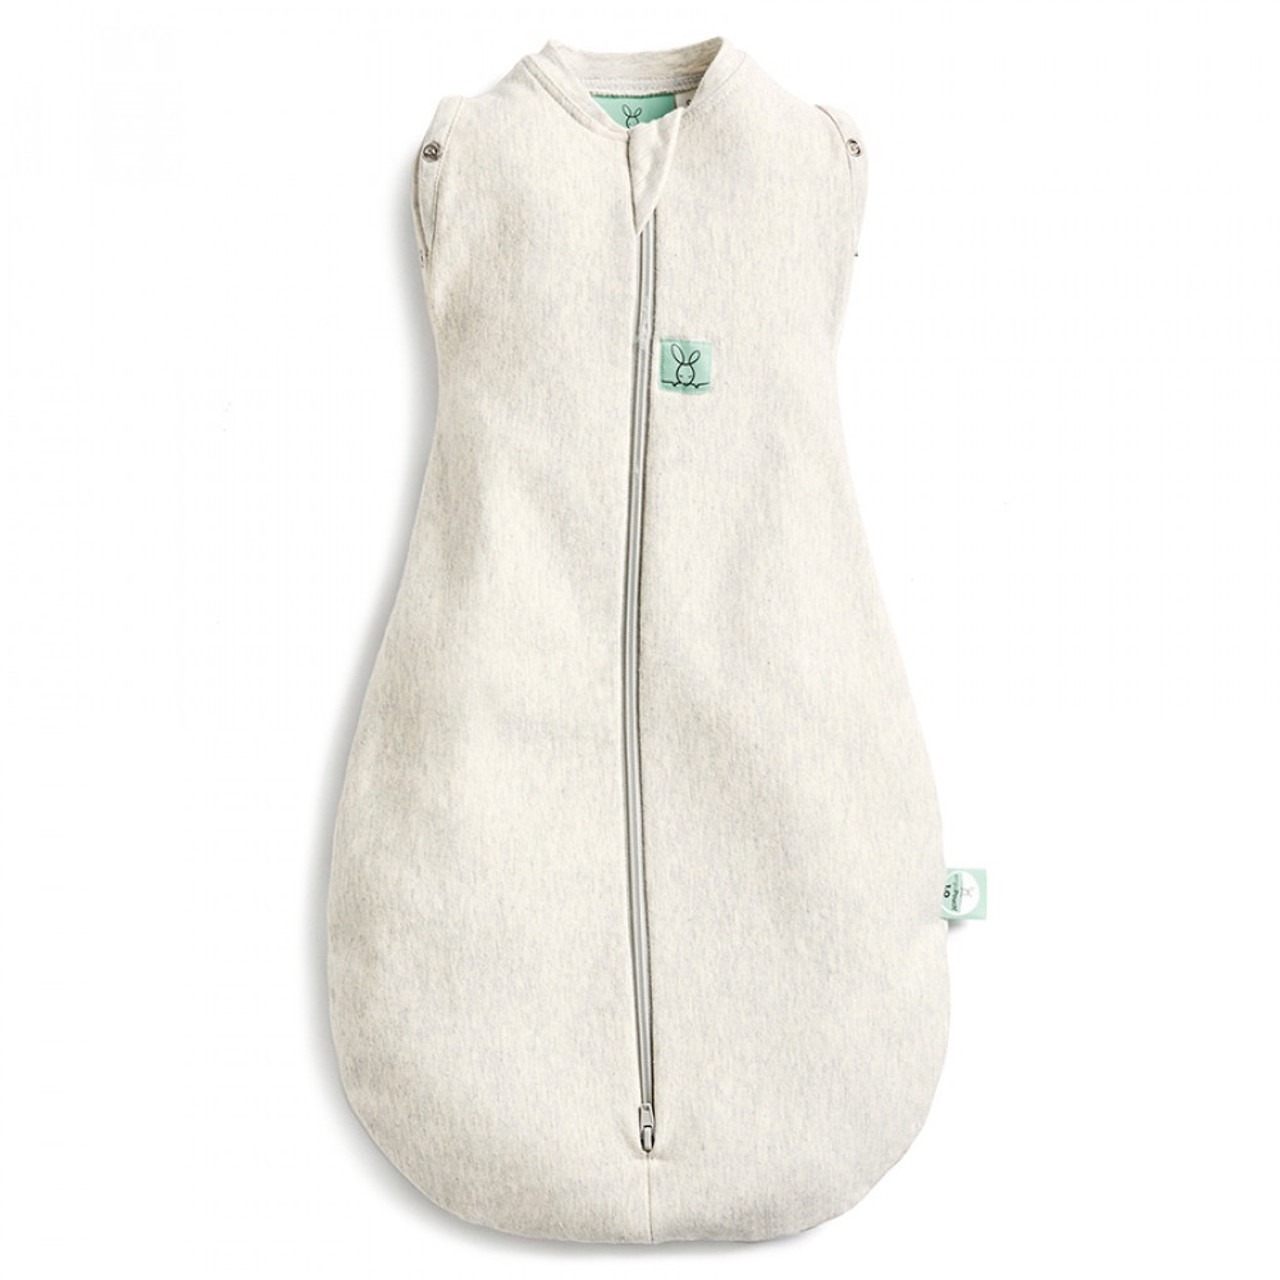 Ergopouch Cocoon Swaddle Bag 1.0 tog 0-3 Months GREY MARLE at Baby Barn Discounts ergoPouch cocoon 1.0 tog is an escape-proof swaddle which converts to a sleeping bag.